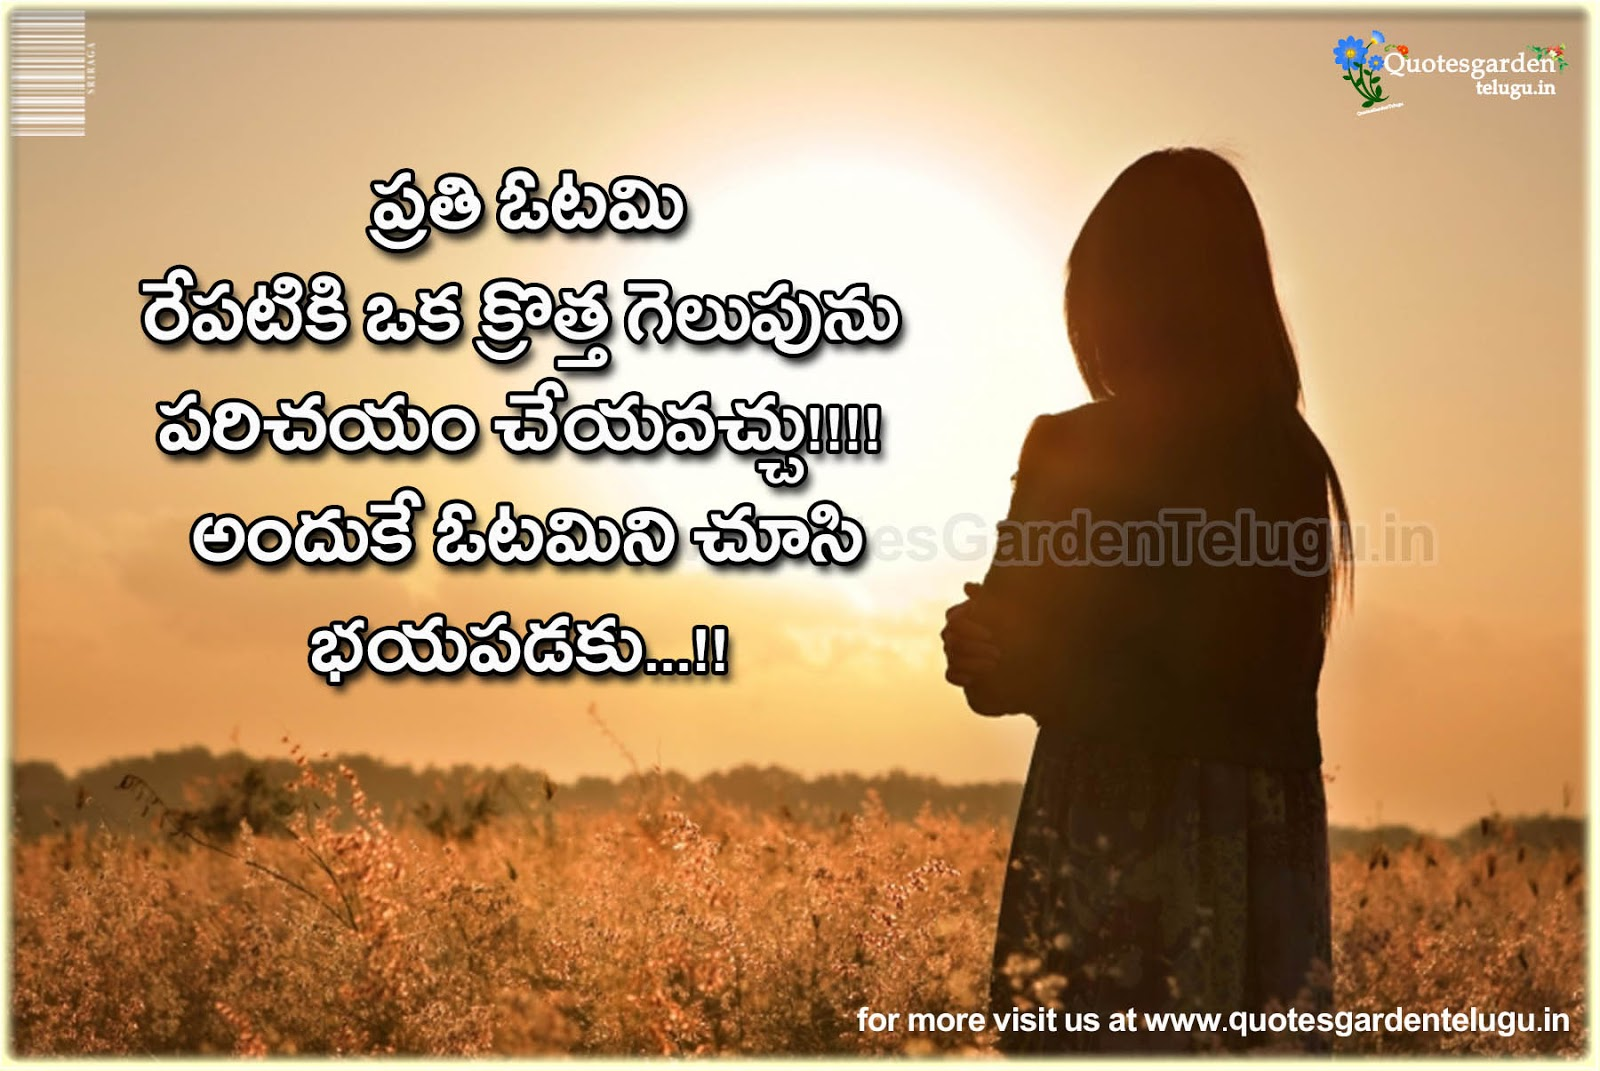 best telugu inspirational messages victory goal setting